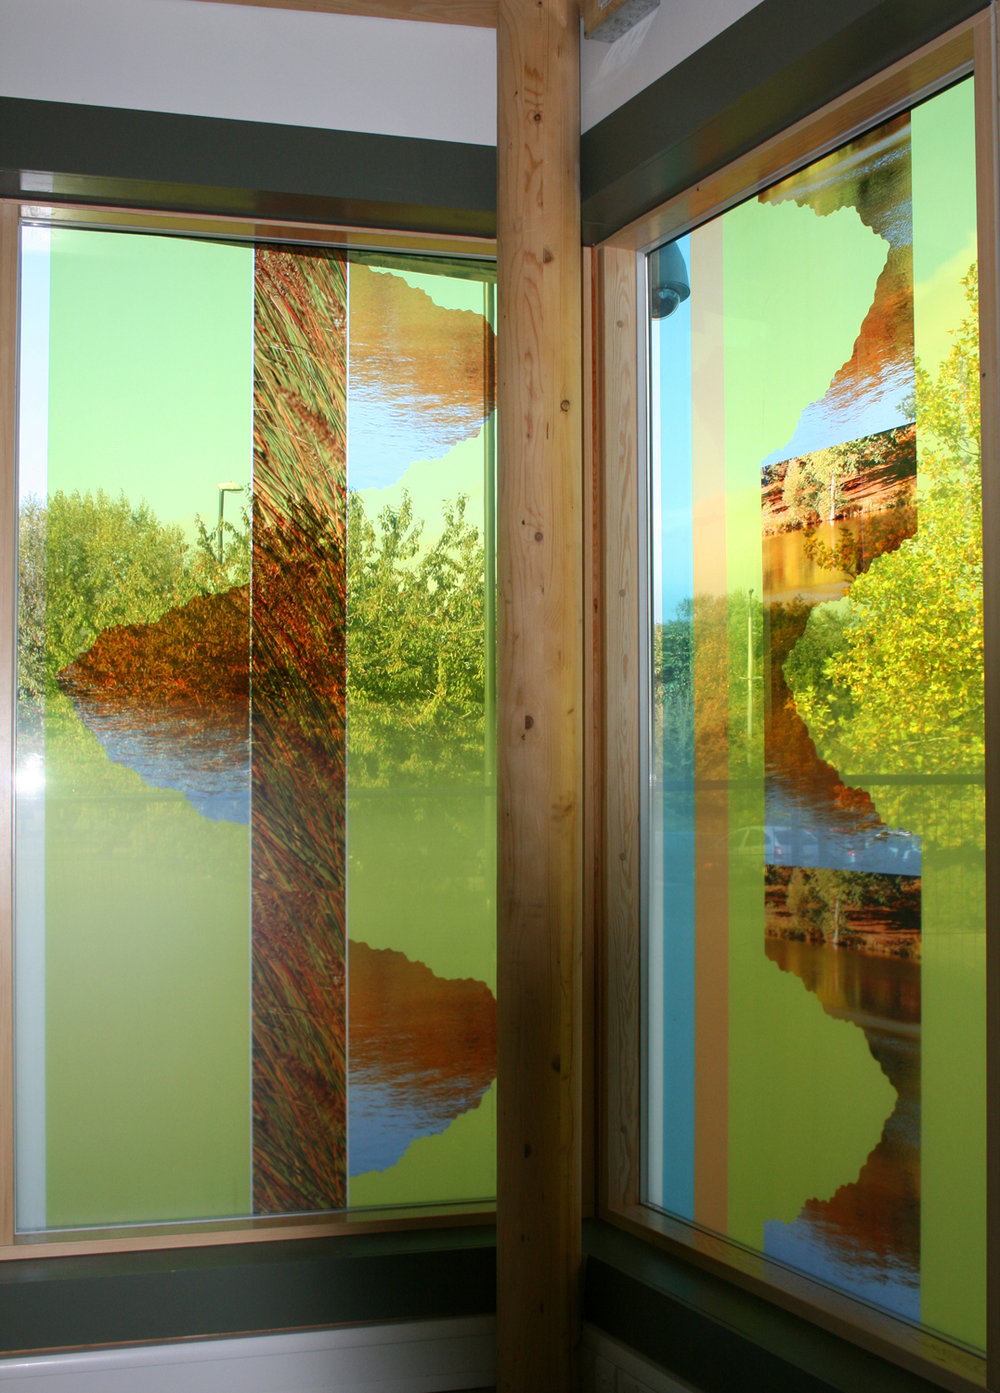 1 The Bewbush Centre, Crawley - interior, 257 x 143cm, laminated& printed glass copy.jpg